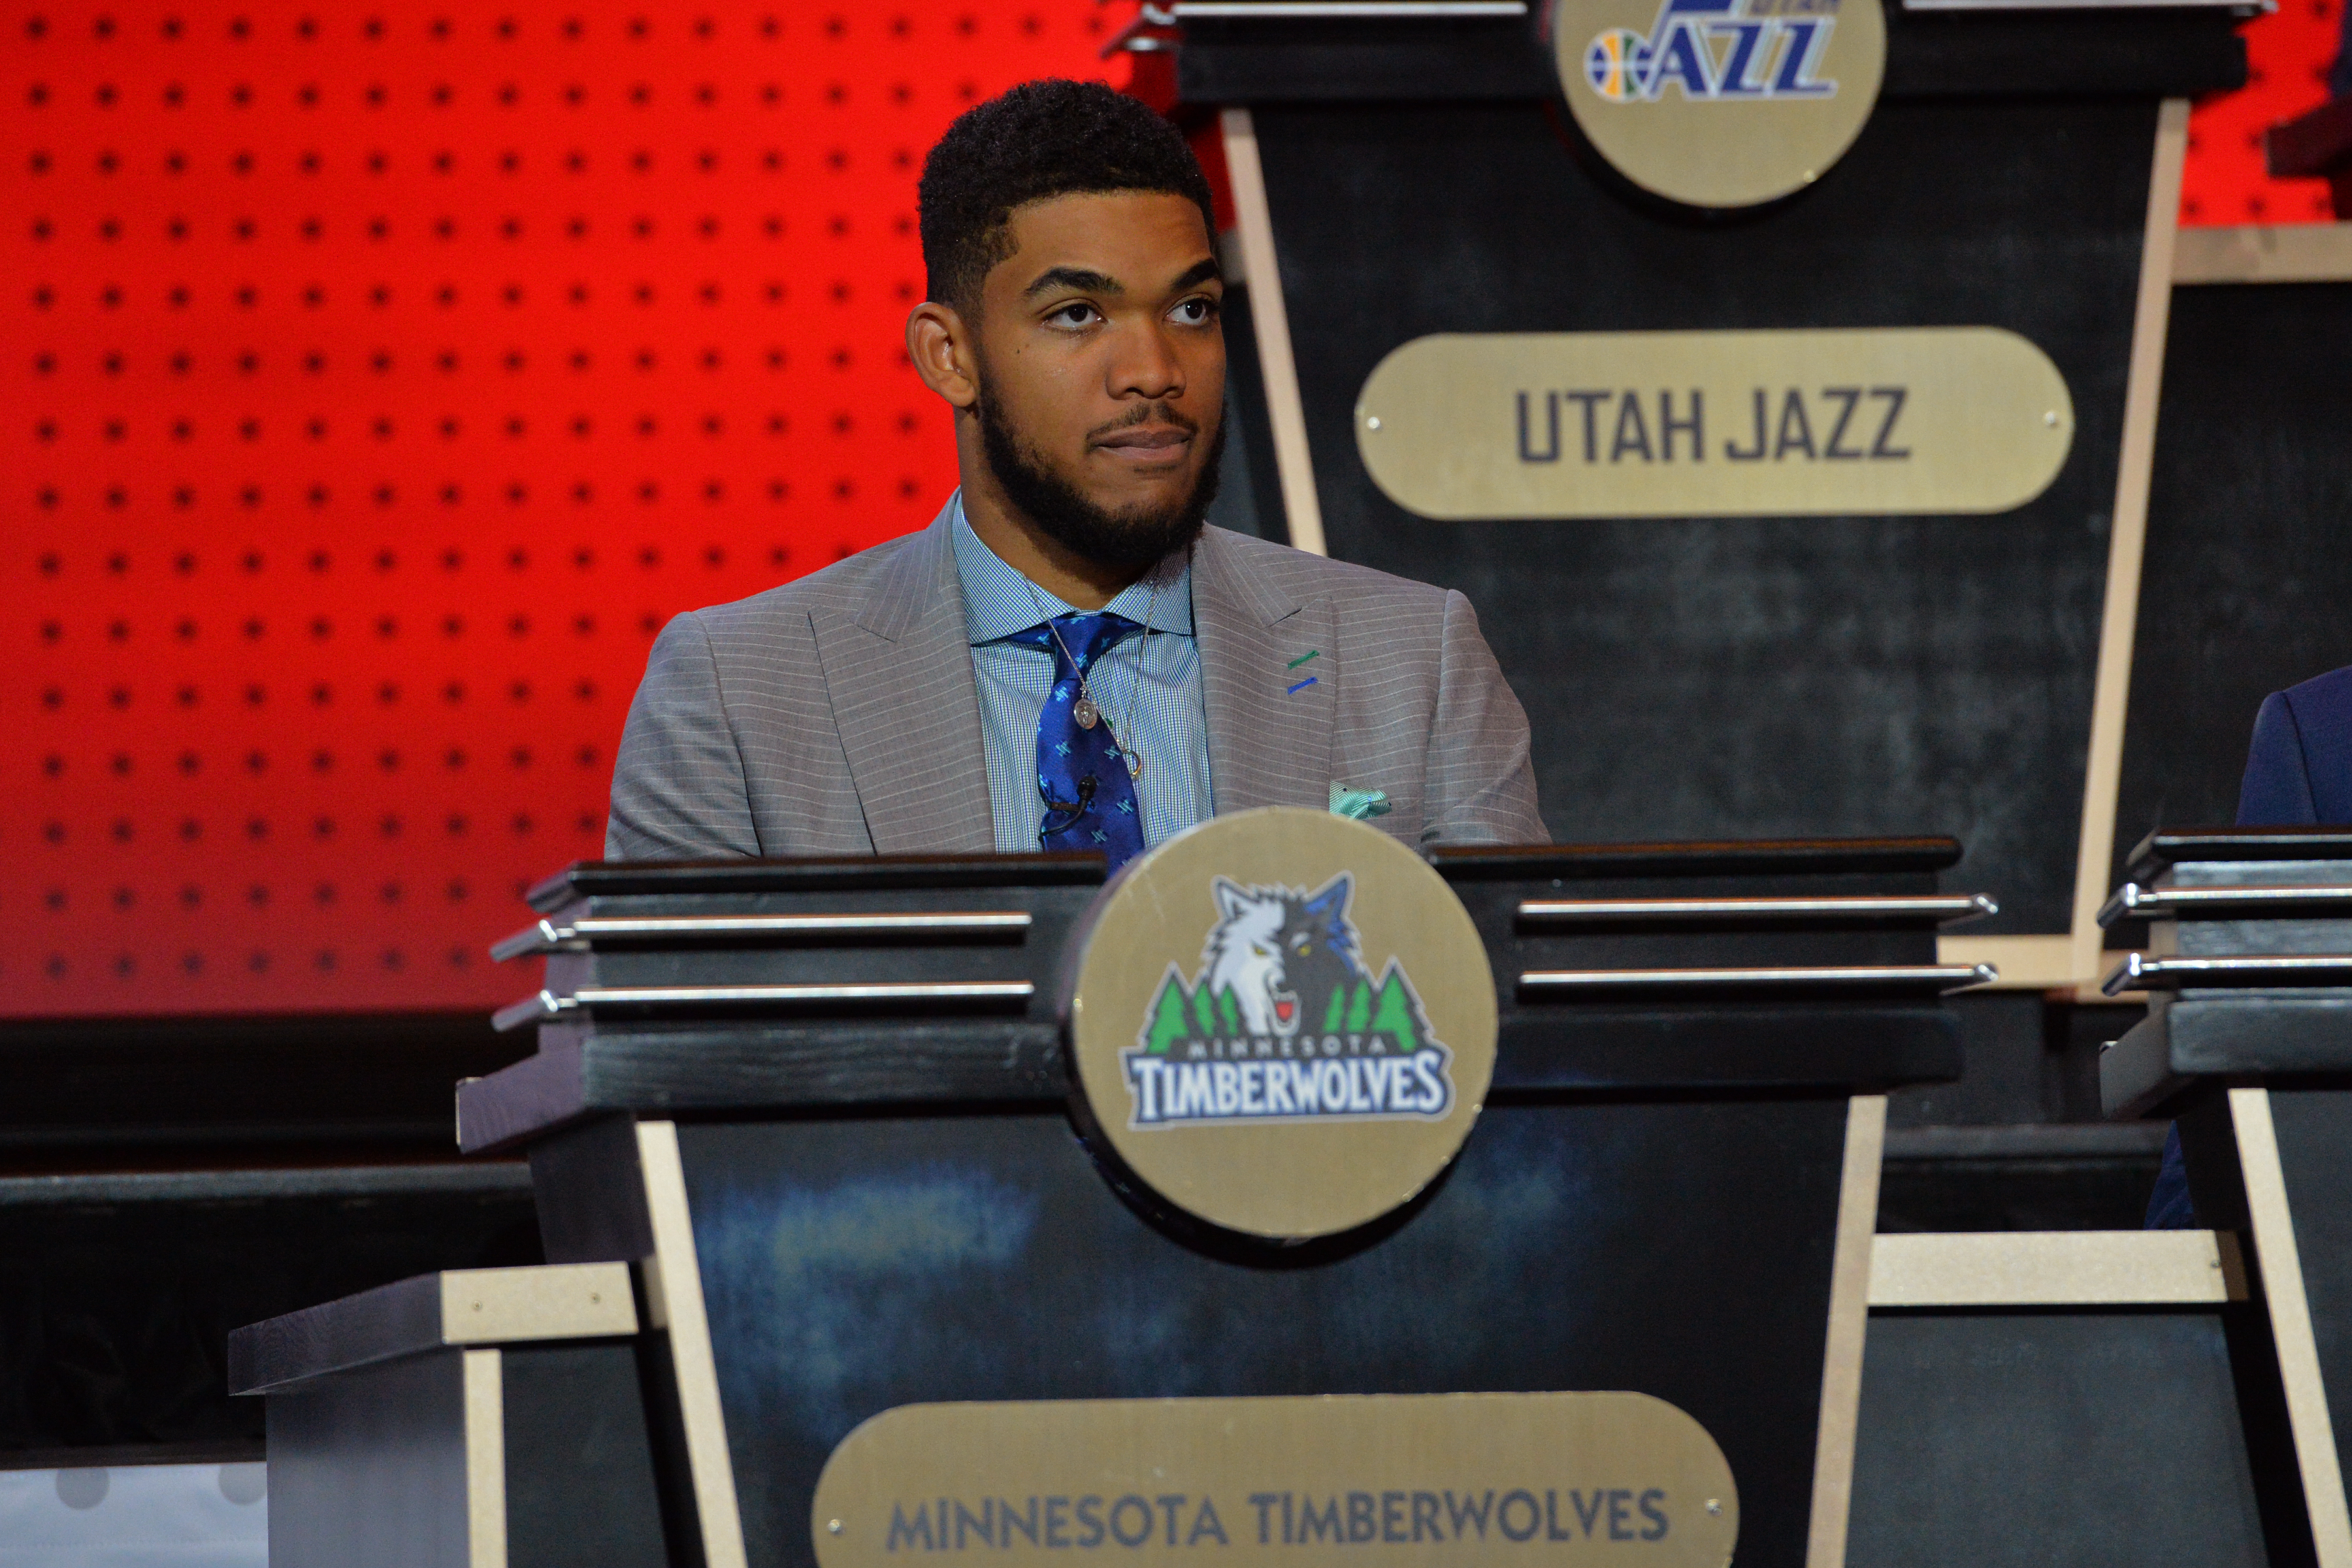 NEW YORK, NEW YORK - MAY 17:  Karl Anthony-Towns #32 of the Minnesota Timberwolves poses for a photo in his seat during the 2016 NBA Draft Lottery at the New York Hilton in New York, New York. (Photo by Jesse D. Garrabrant/NBAE via Getty Images)